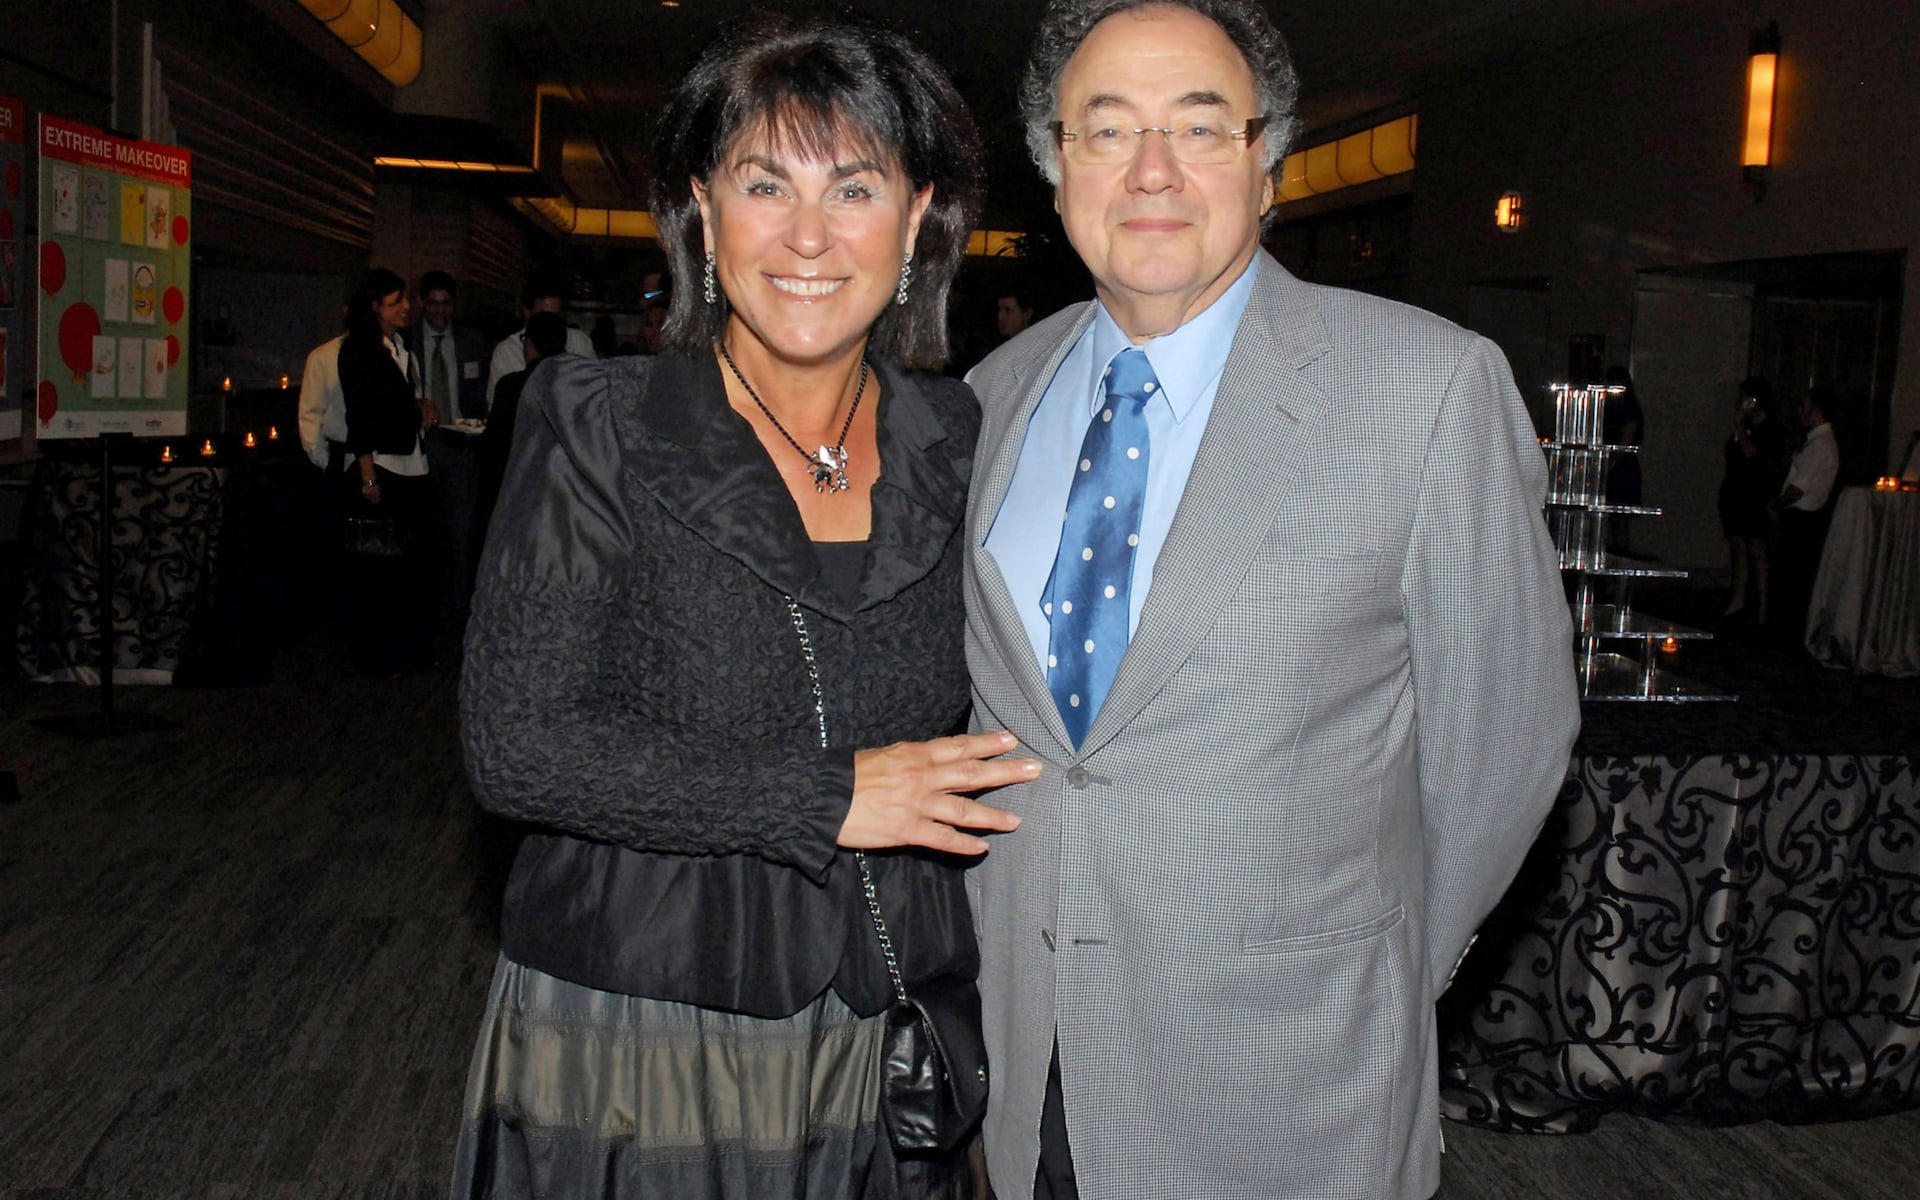 Canadian pharmaceutical billionaire and wife found dead in Toronto in suspicious circumstances